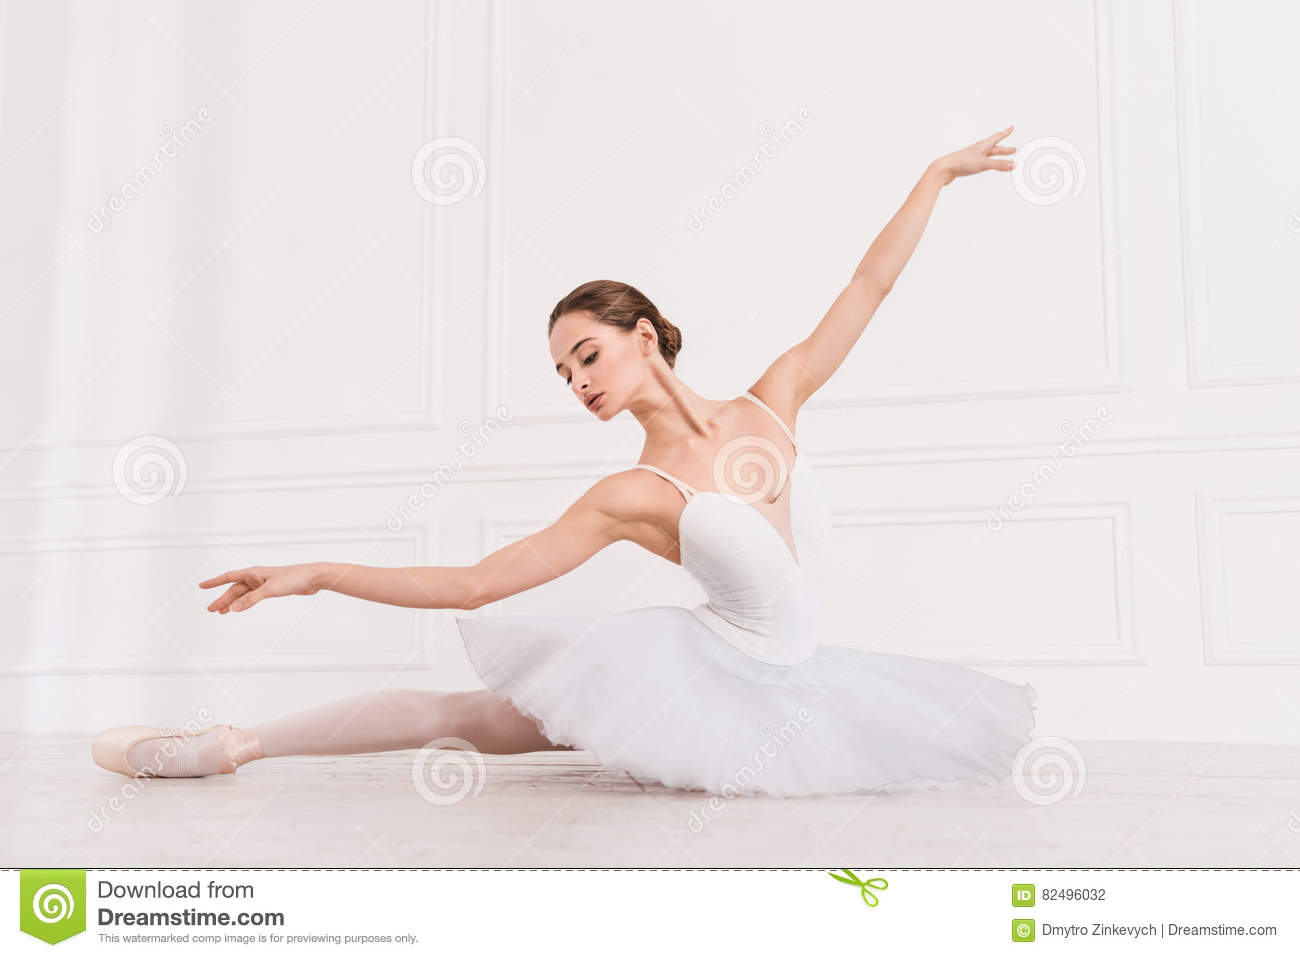 336d496acbb619 Serious young ballerina wearing white leotard with fluffy skirt looking  down while stretching her leg on the floor